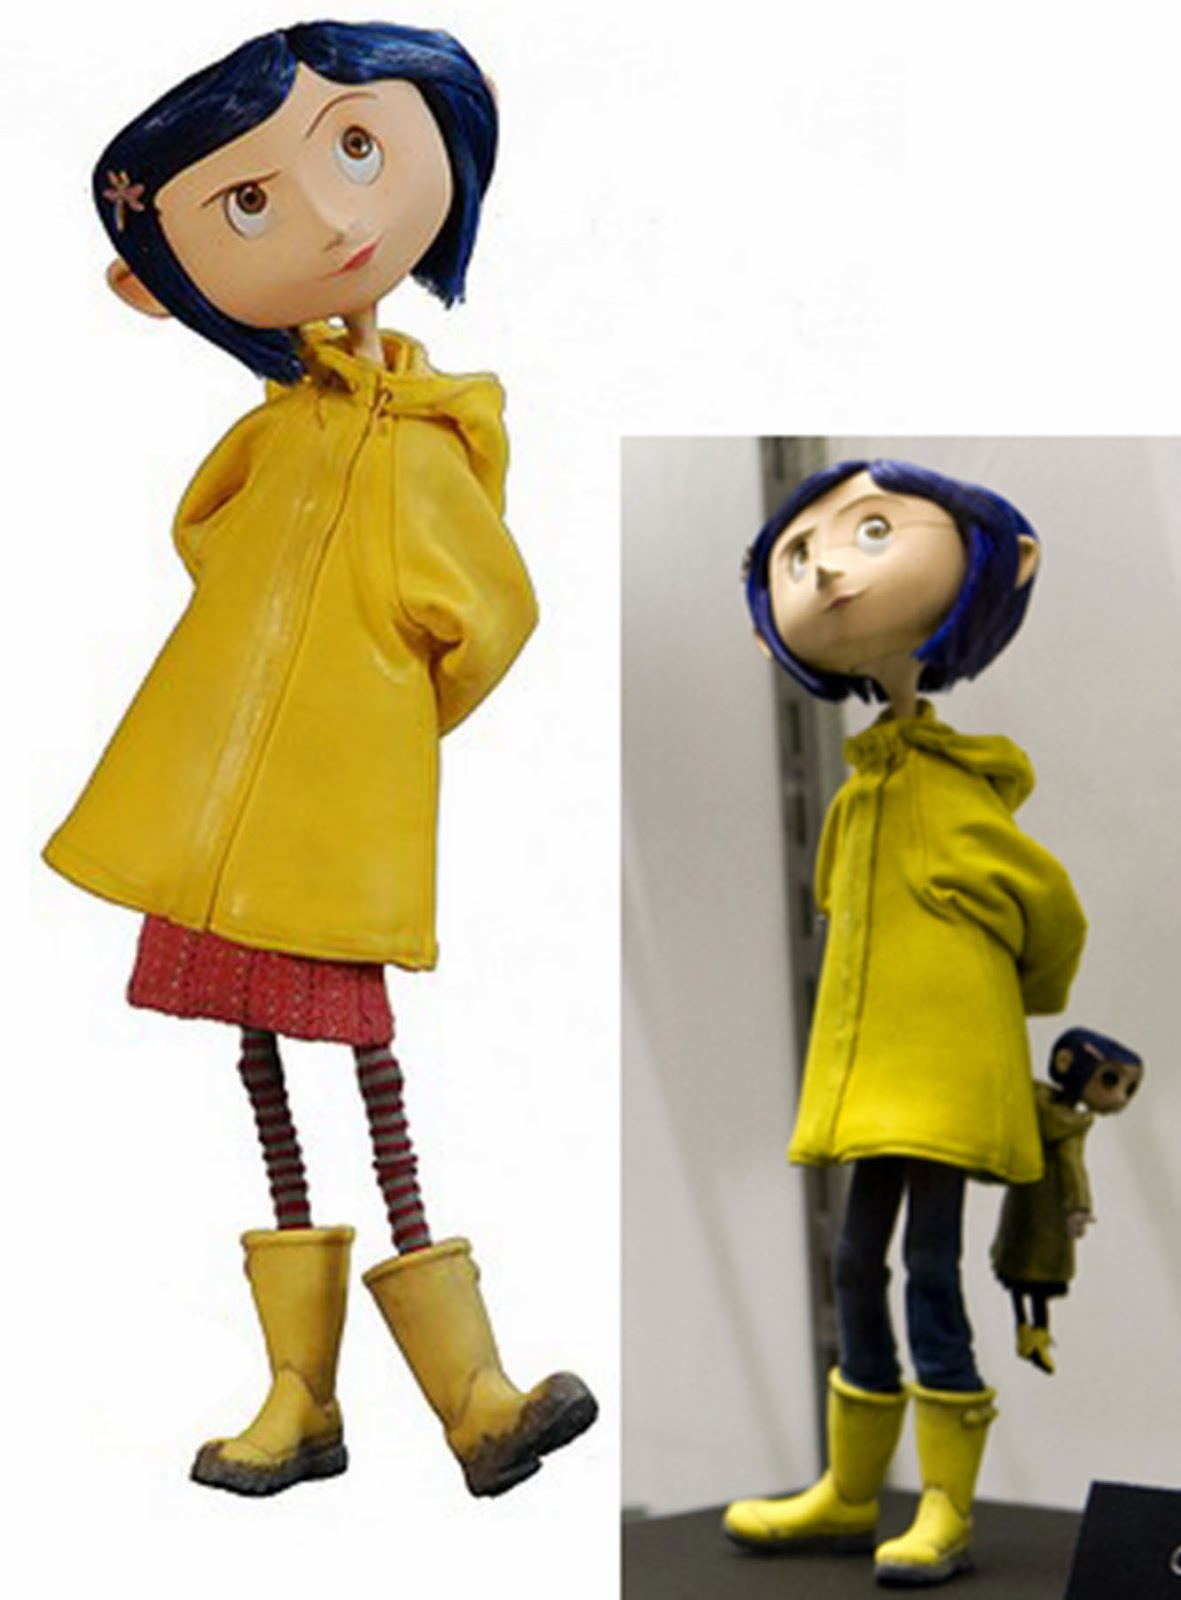 Polka Dot Overload Sewing Knitting Vintage Projects Tips Tutorials And Cartoons Coraline Zoraline Costume Carpal Tunnel And Rsi Struggles